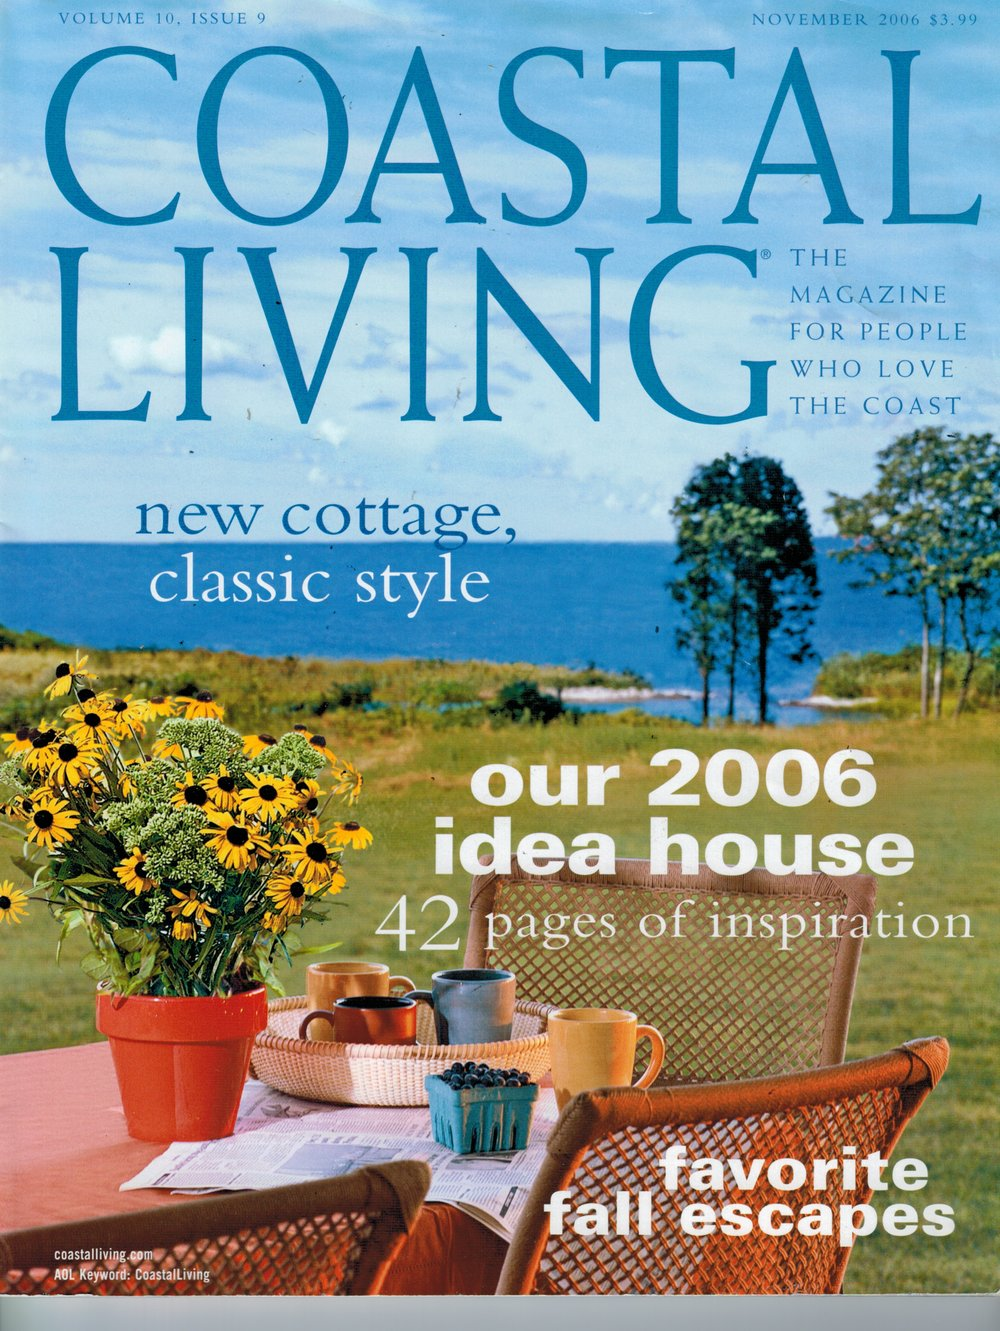 Coastal living cover.jpeg